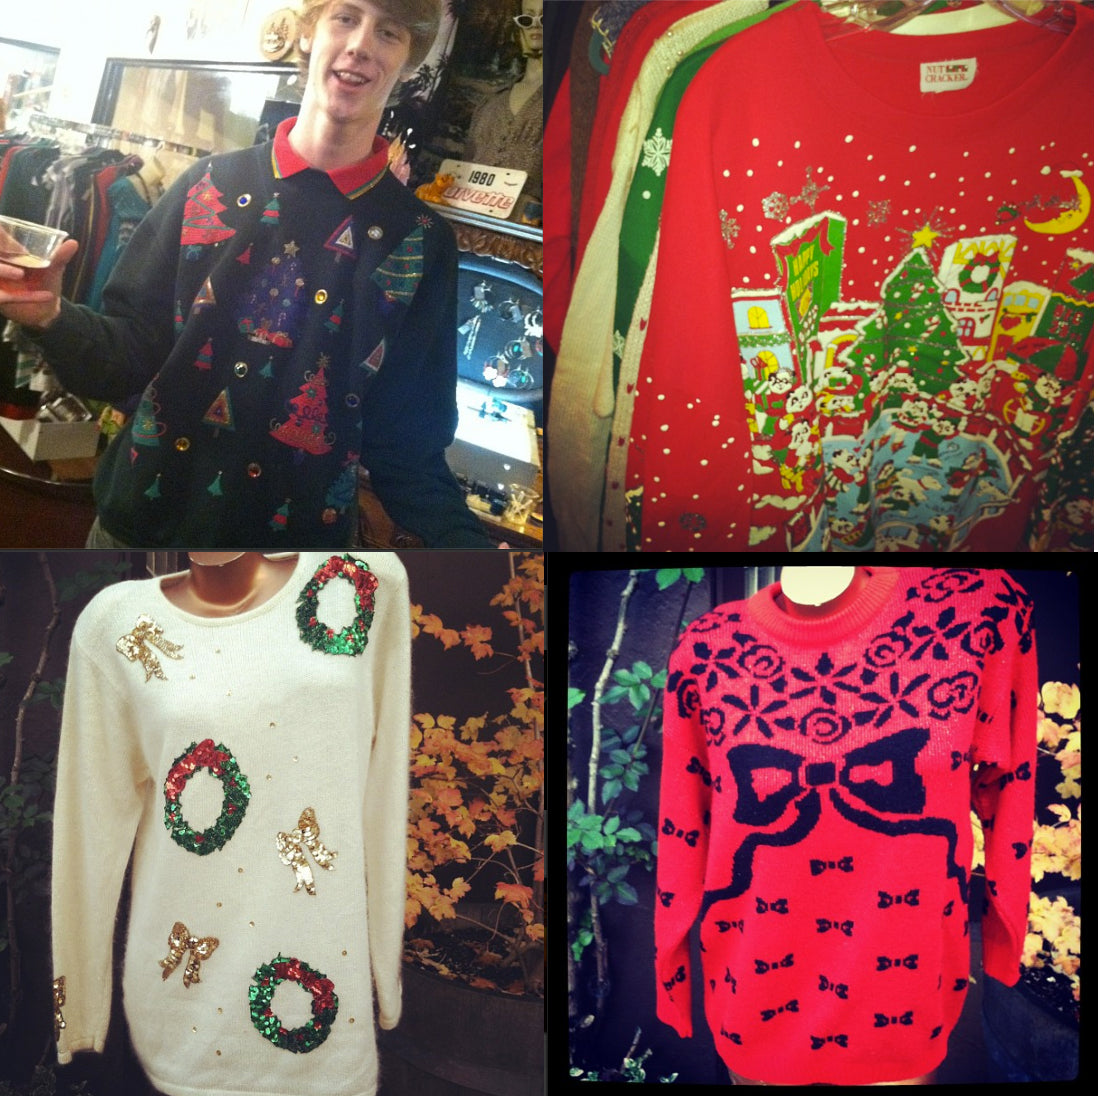 christmas ugliness in store now!